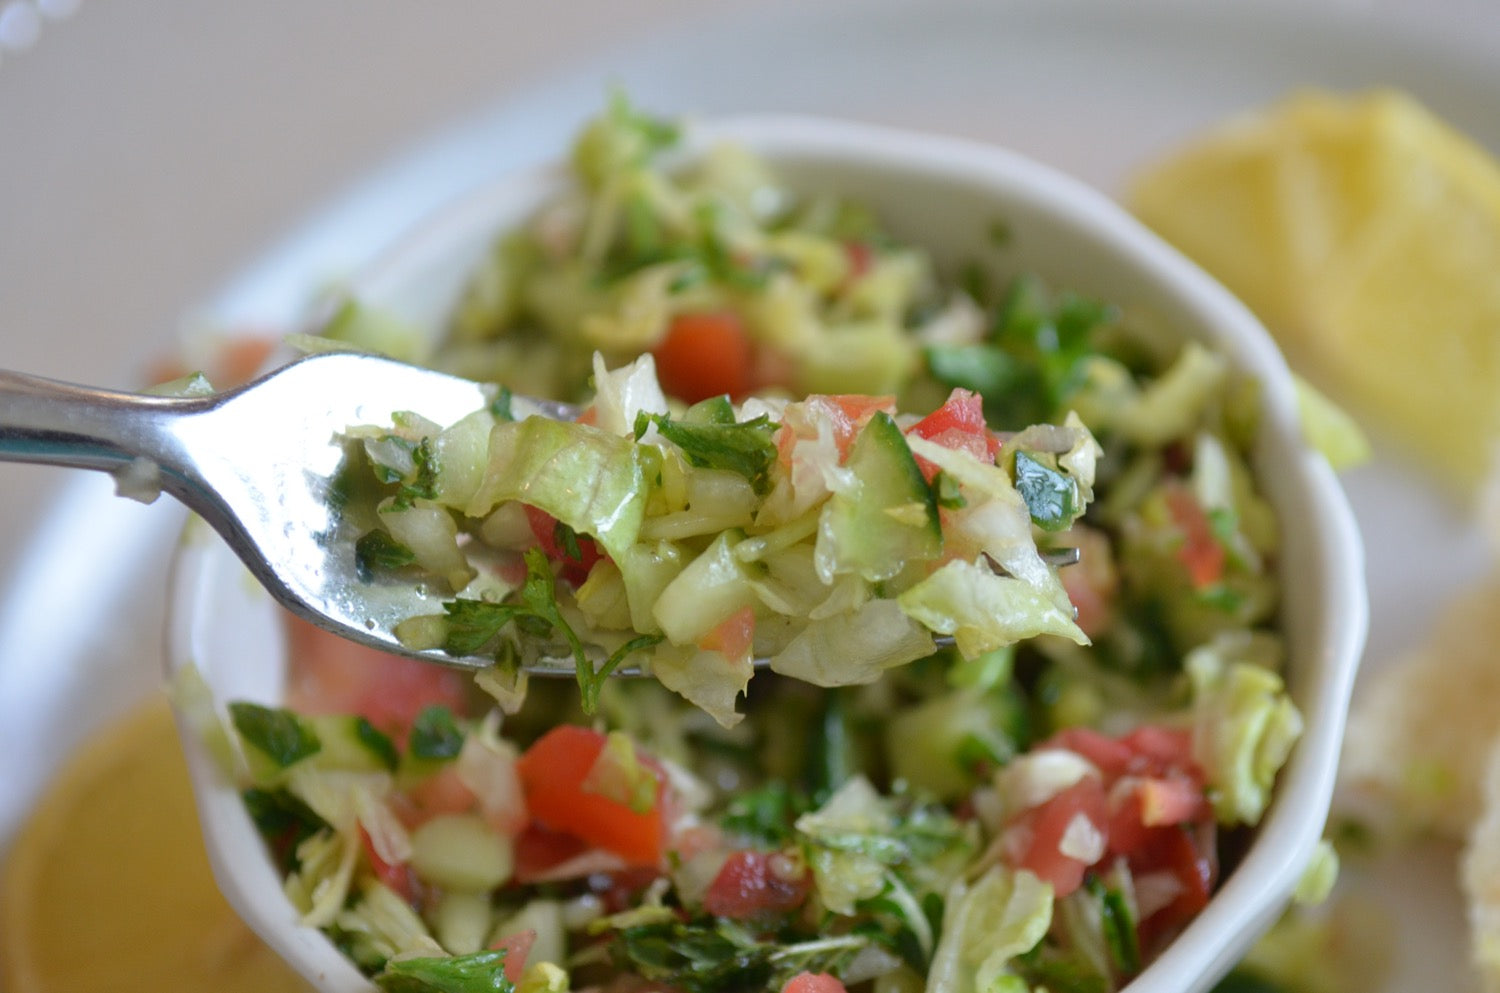 A forkful of Grain Free Tabouli